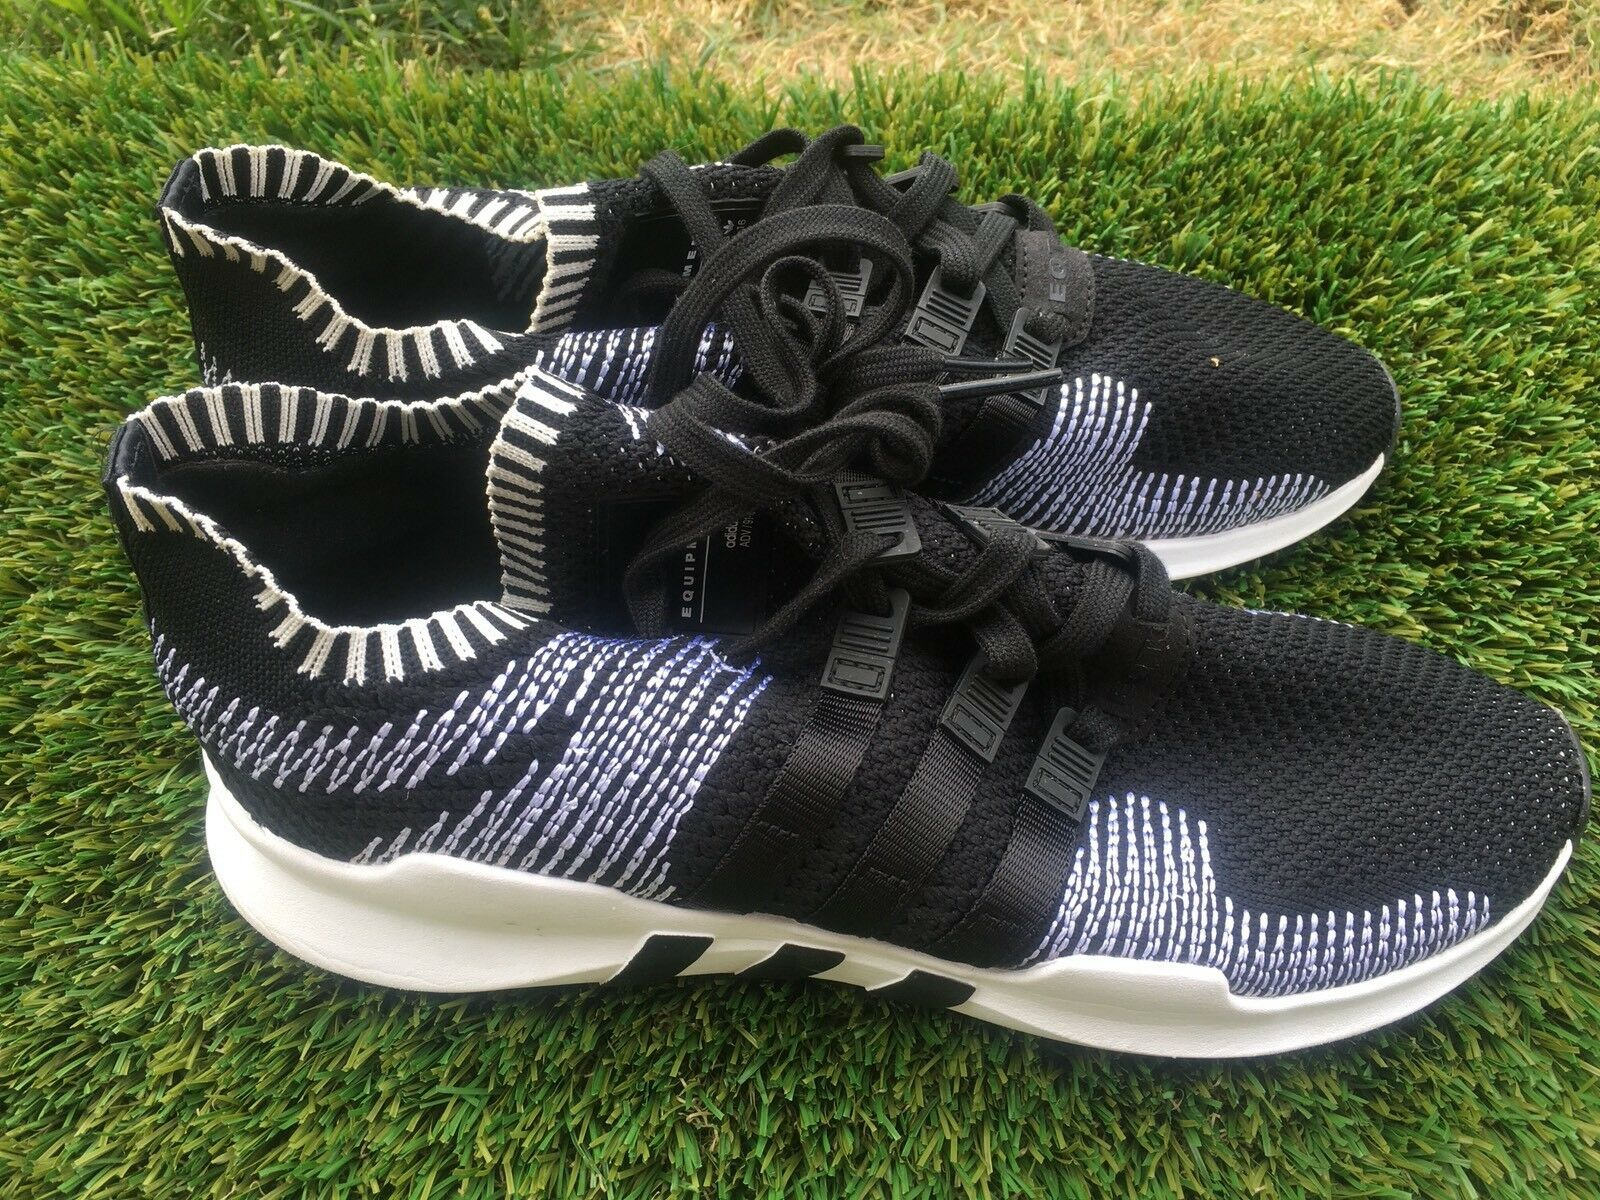 ADIDAS QUESTAR RIDEhomme&039;S RIDEhomme&039;S RIDEhomme&039;S Taille US 9.5 STREET CASUAL  B44806 ed5197